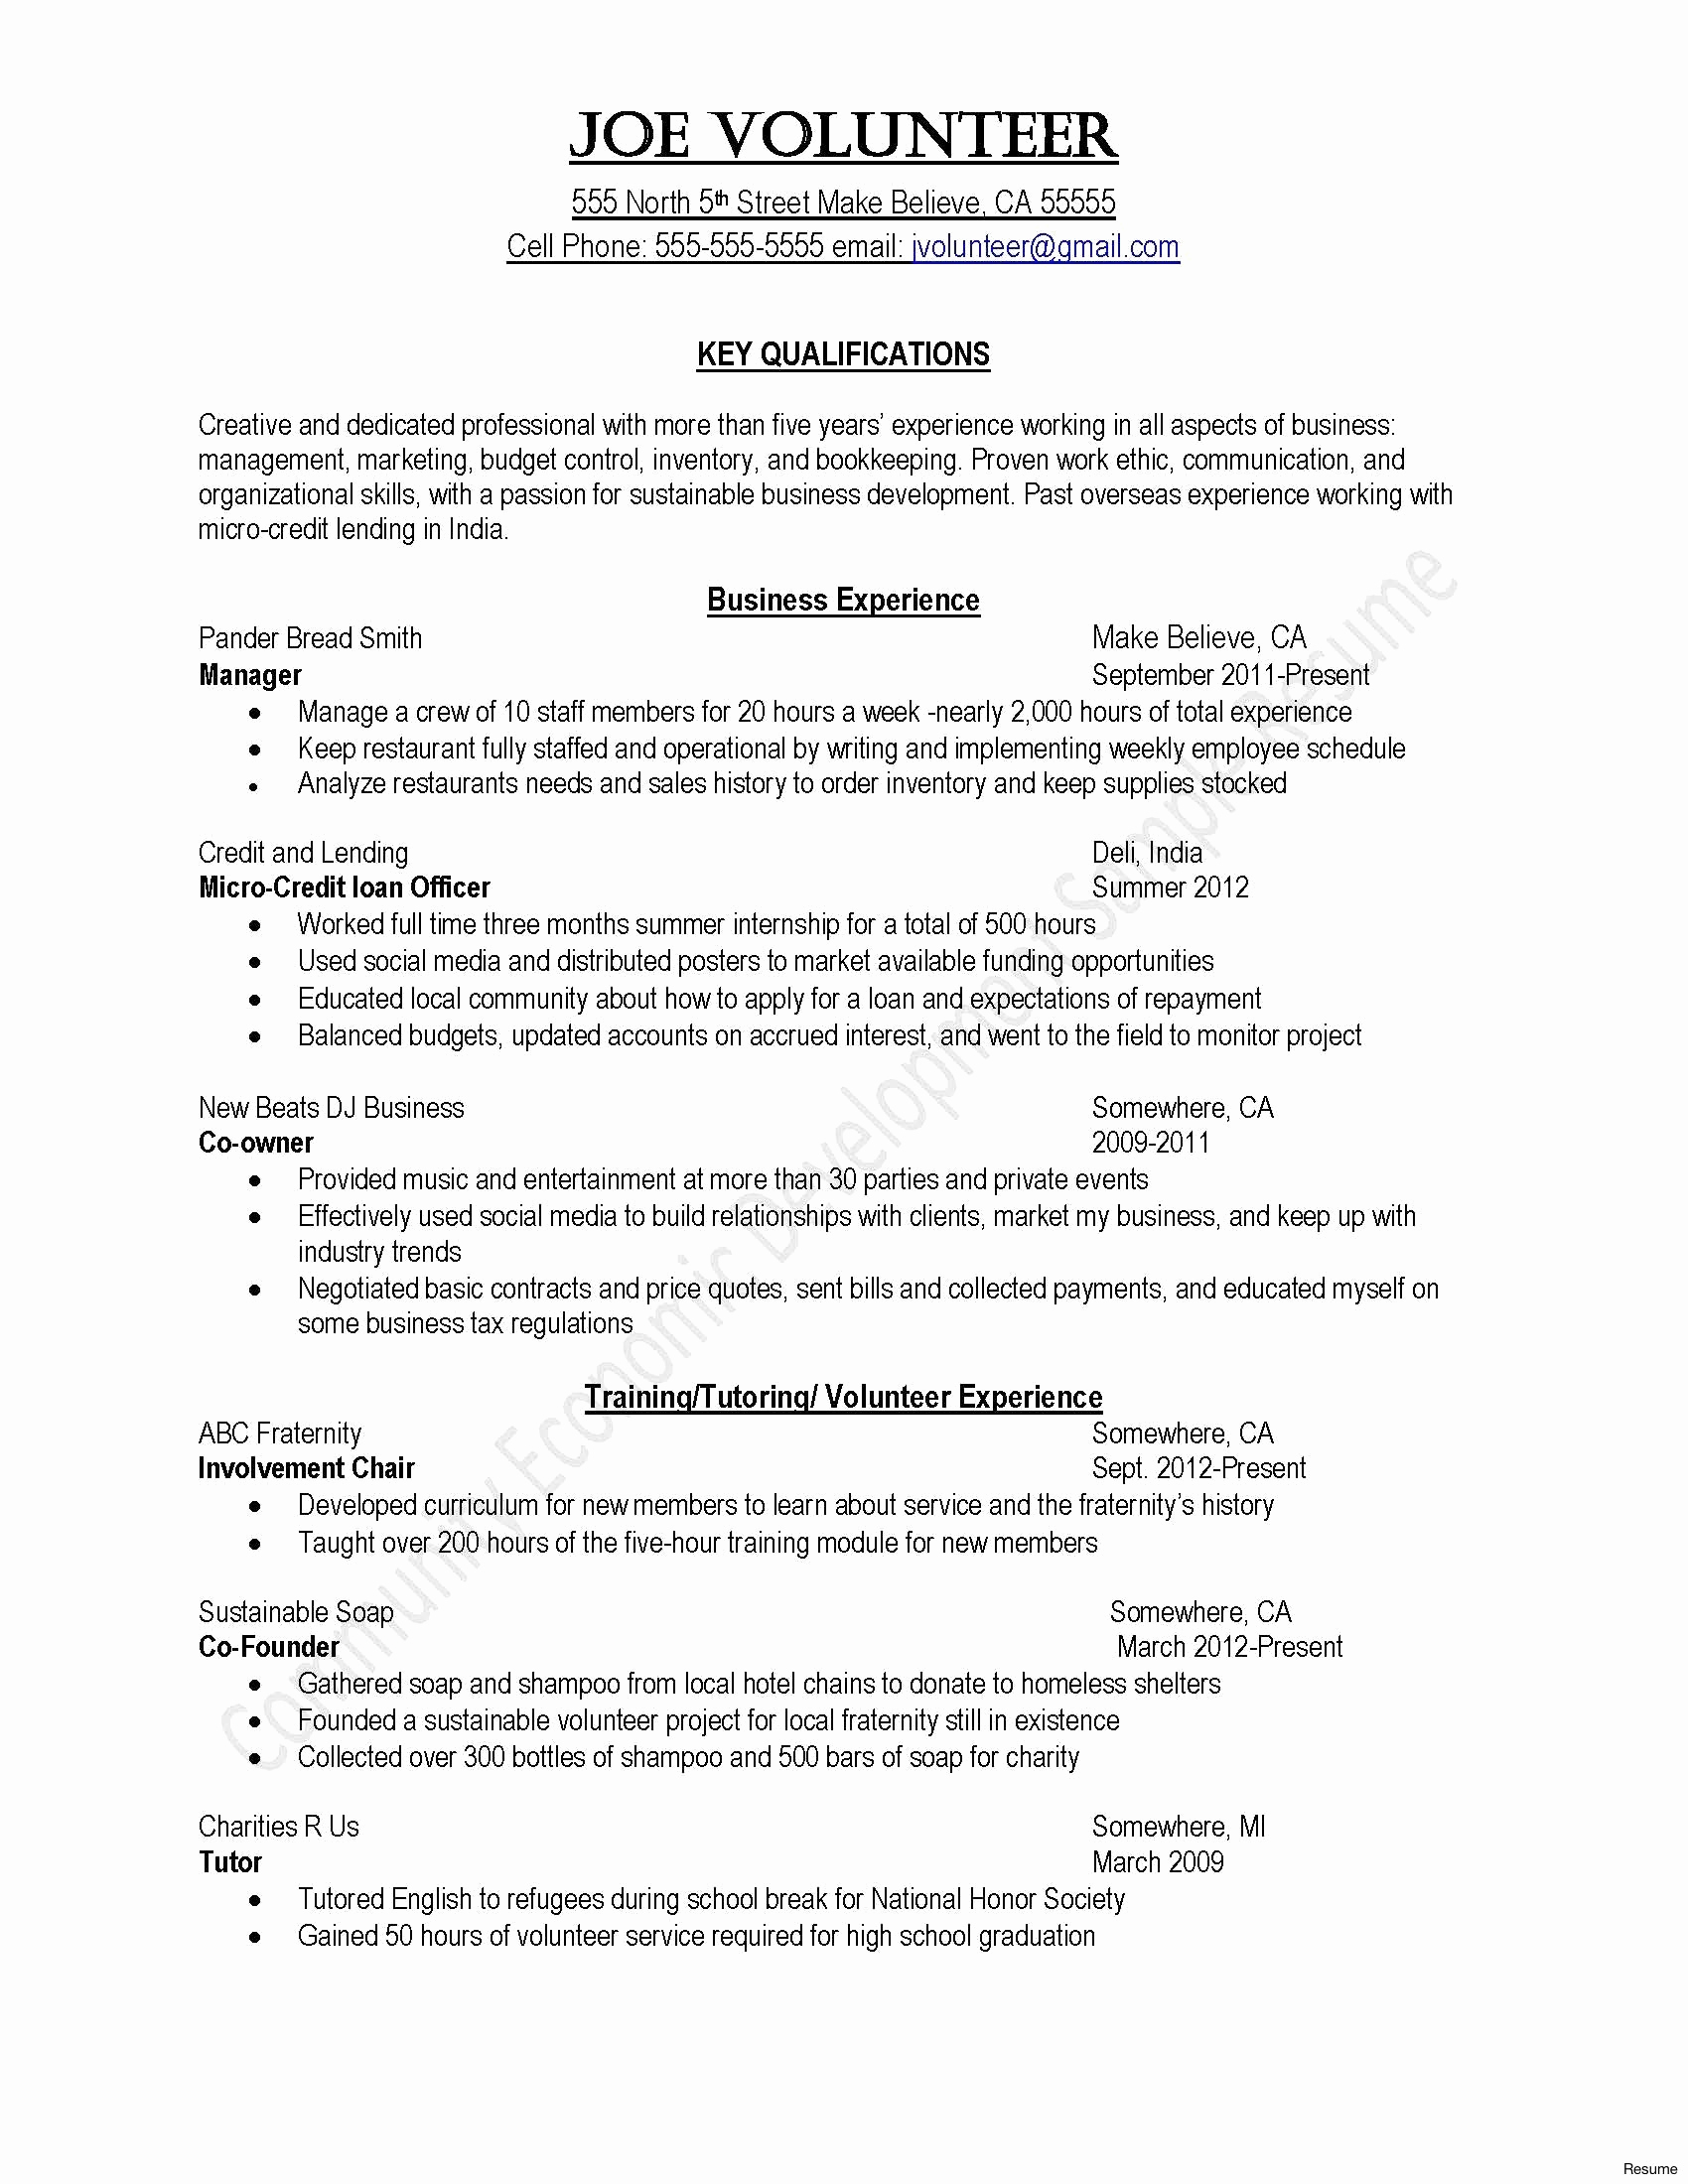 email sales letter template example-Cover Letter Template for Resume Unique Od Specialist Sample Resume Resume for Graphic Designer Sample 3-i